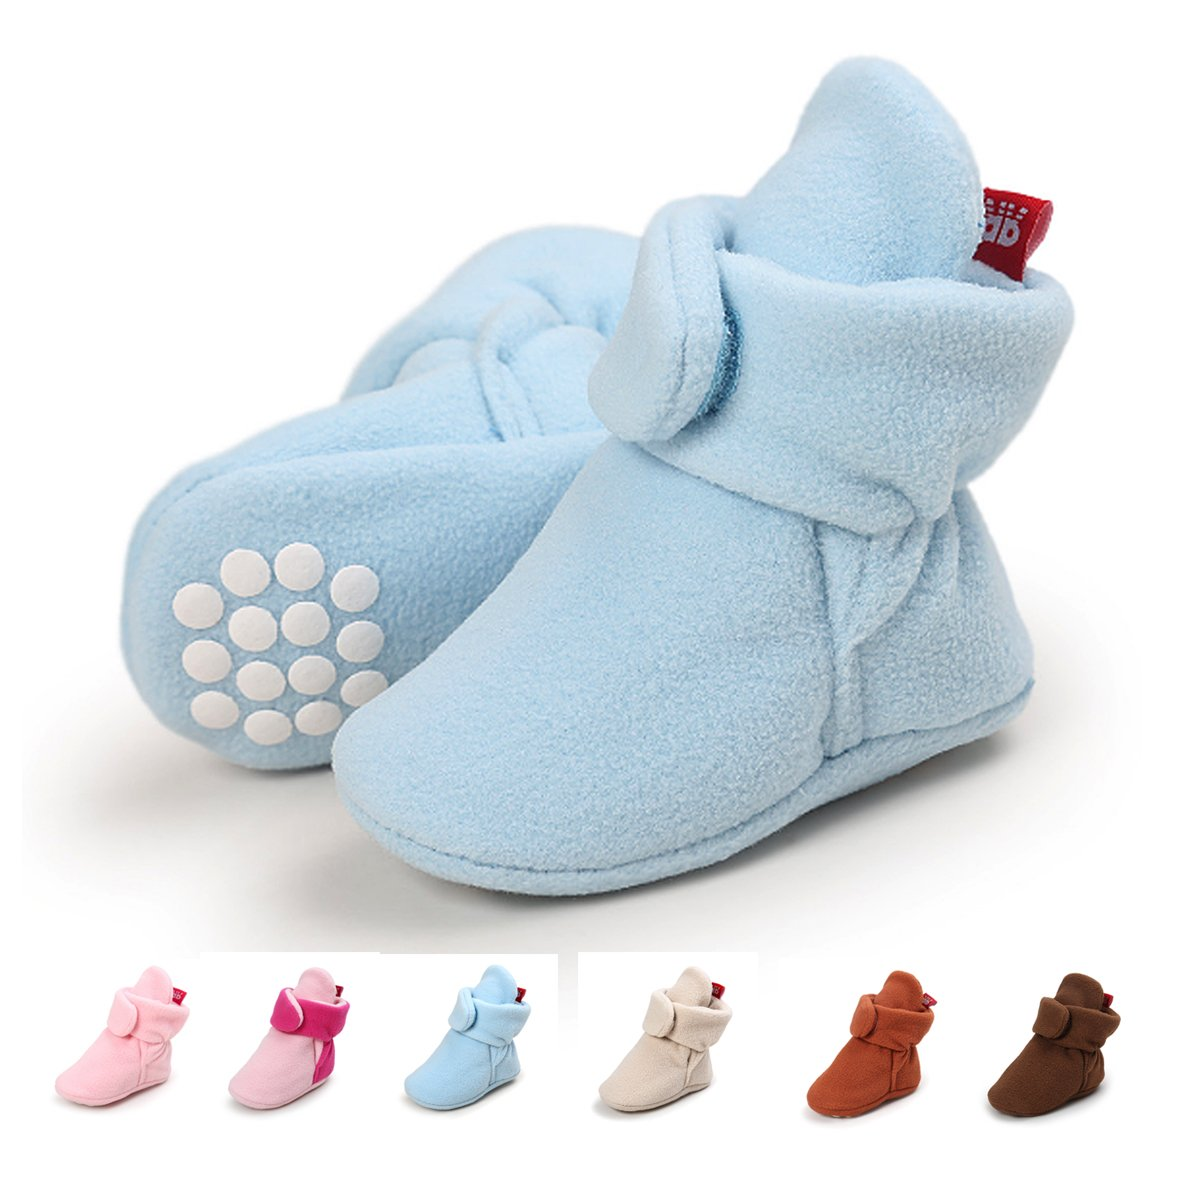 Baby Boys Girls Fleece Booties - Cotton Lining Anti-Slip Infant Warm Winter Crib Shoes